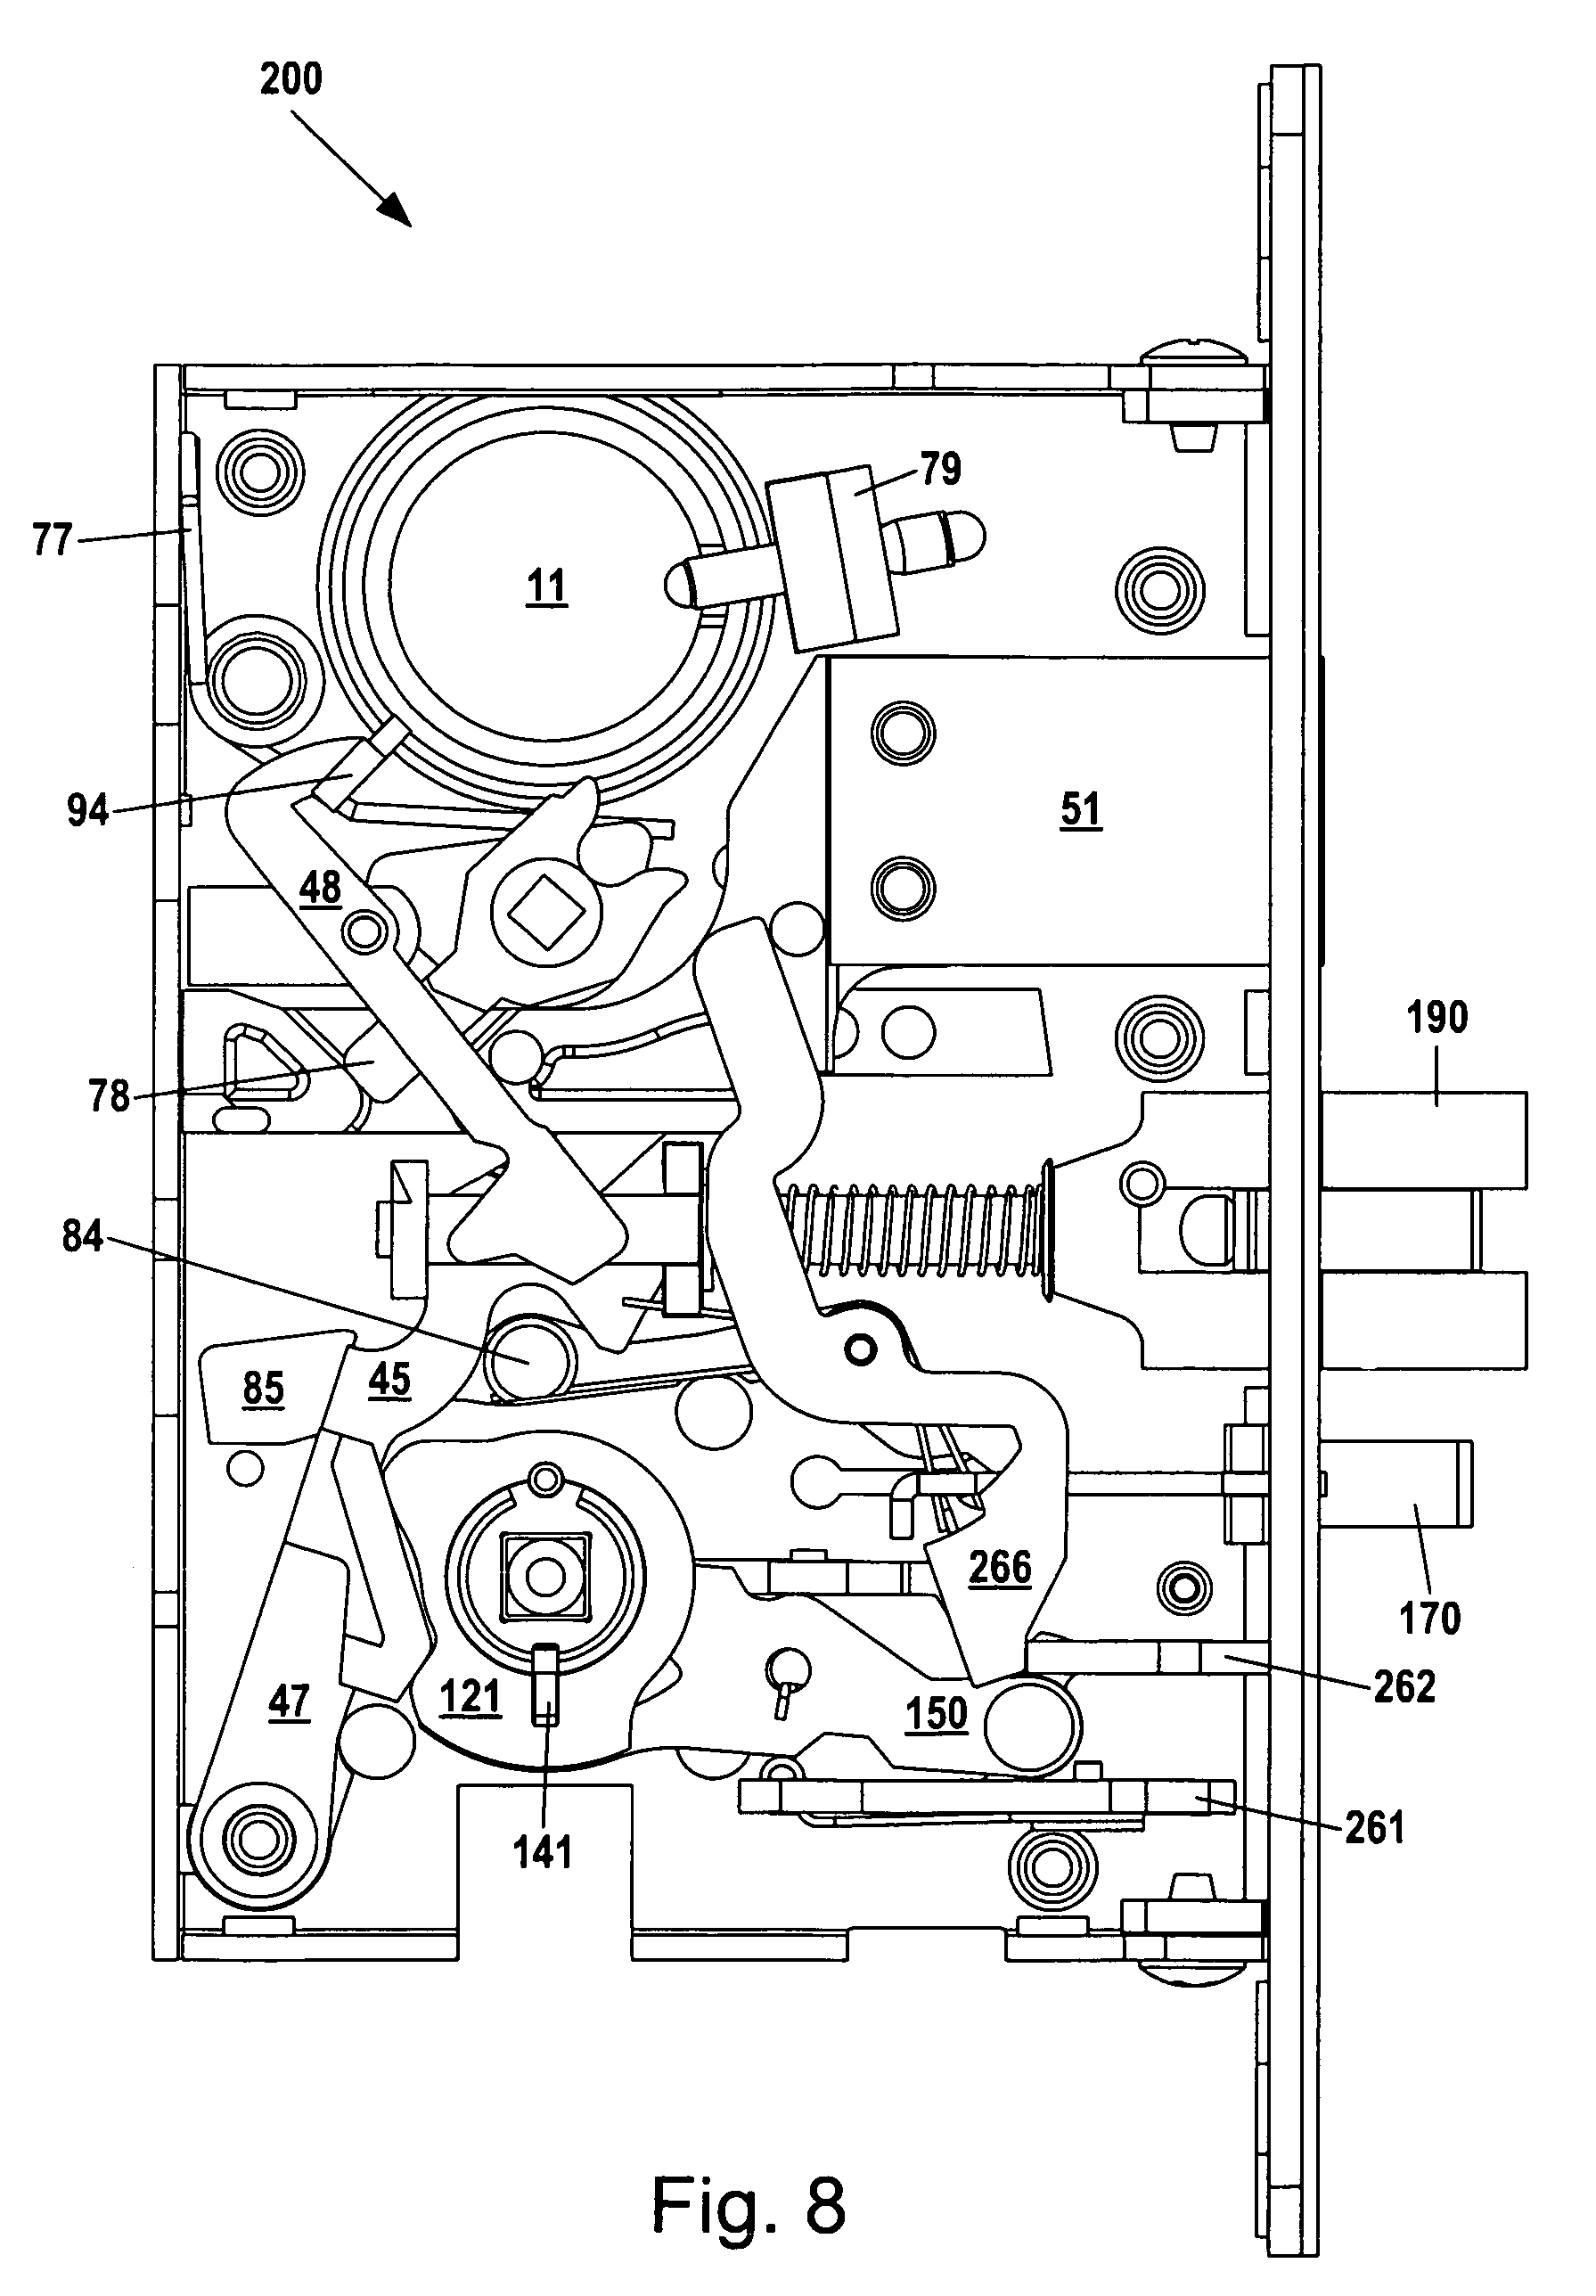 brevetto us8292336 - mortise lock assembly